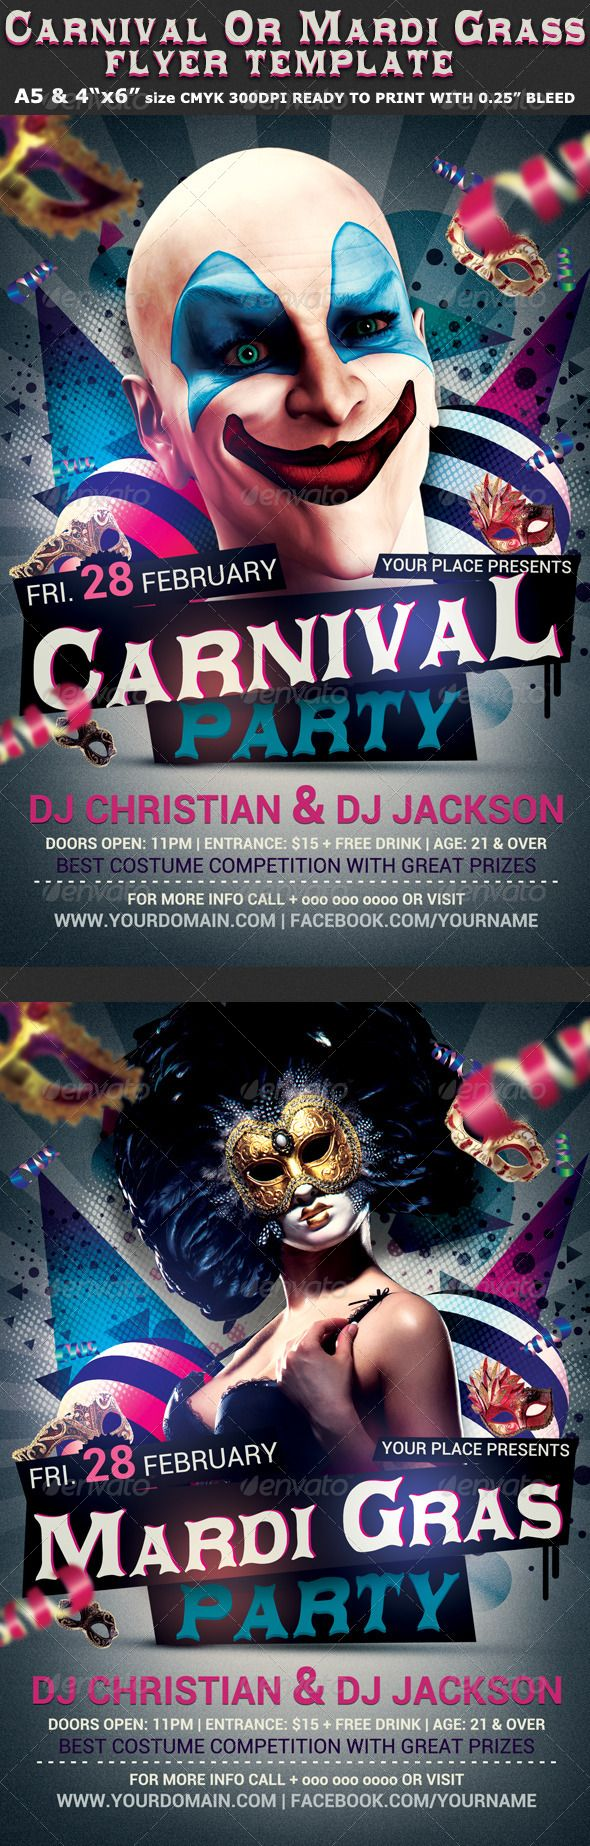 """Carnival n Mardi Grass Party Flyer Template is very modern psd flyer that will give the perfect promotion for your upcoming event or nightclub party!All text is Editable and the elements are is separate layers!  4 PSD files – A5, 4""""x6"""" with 0.3mm bleed (2 for Carnival and 2 for Mardi Grass)  Clearly labeled folders and layers  CMYK – 300dpi – Ready to print with guides"""